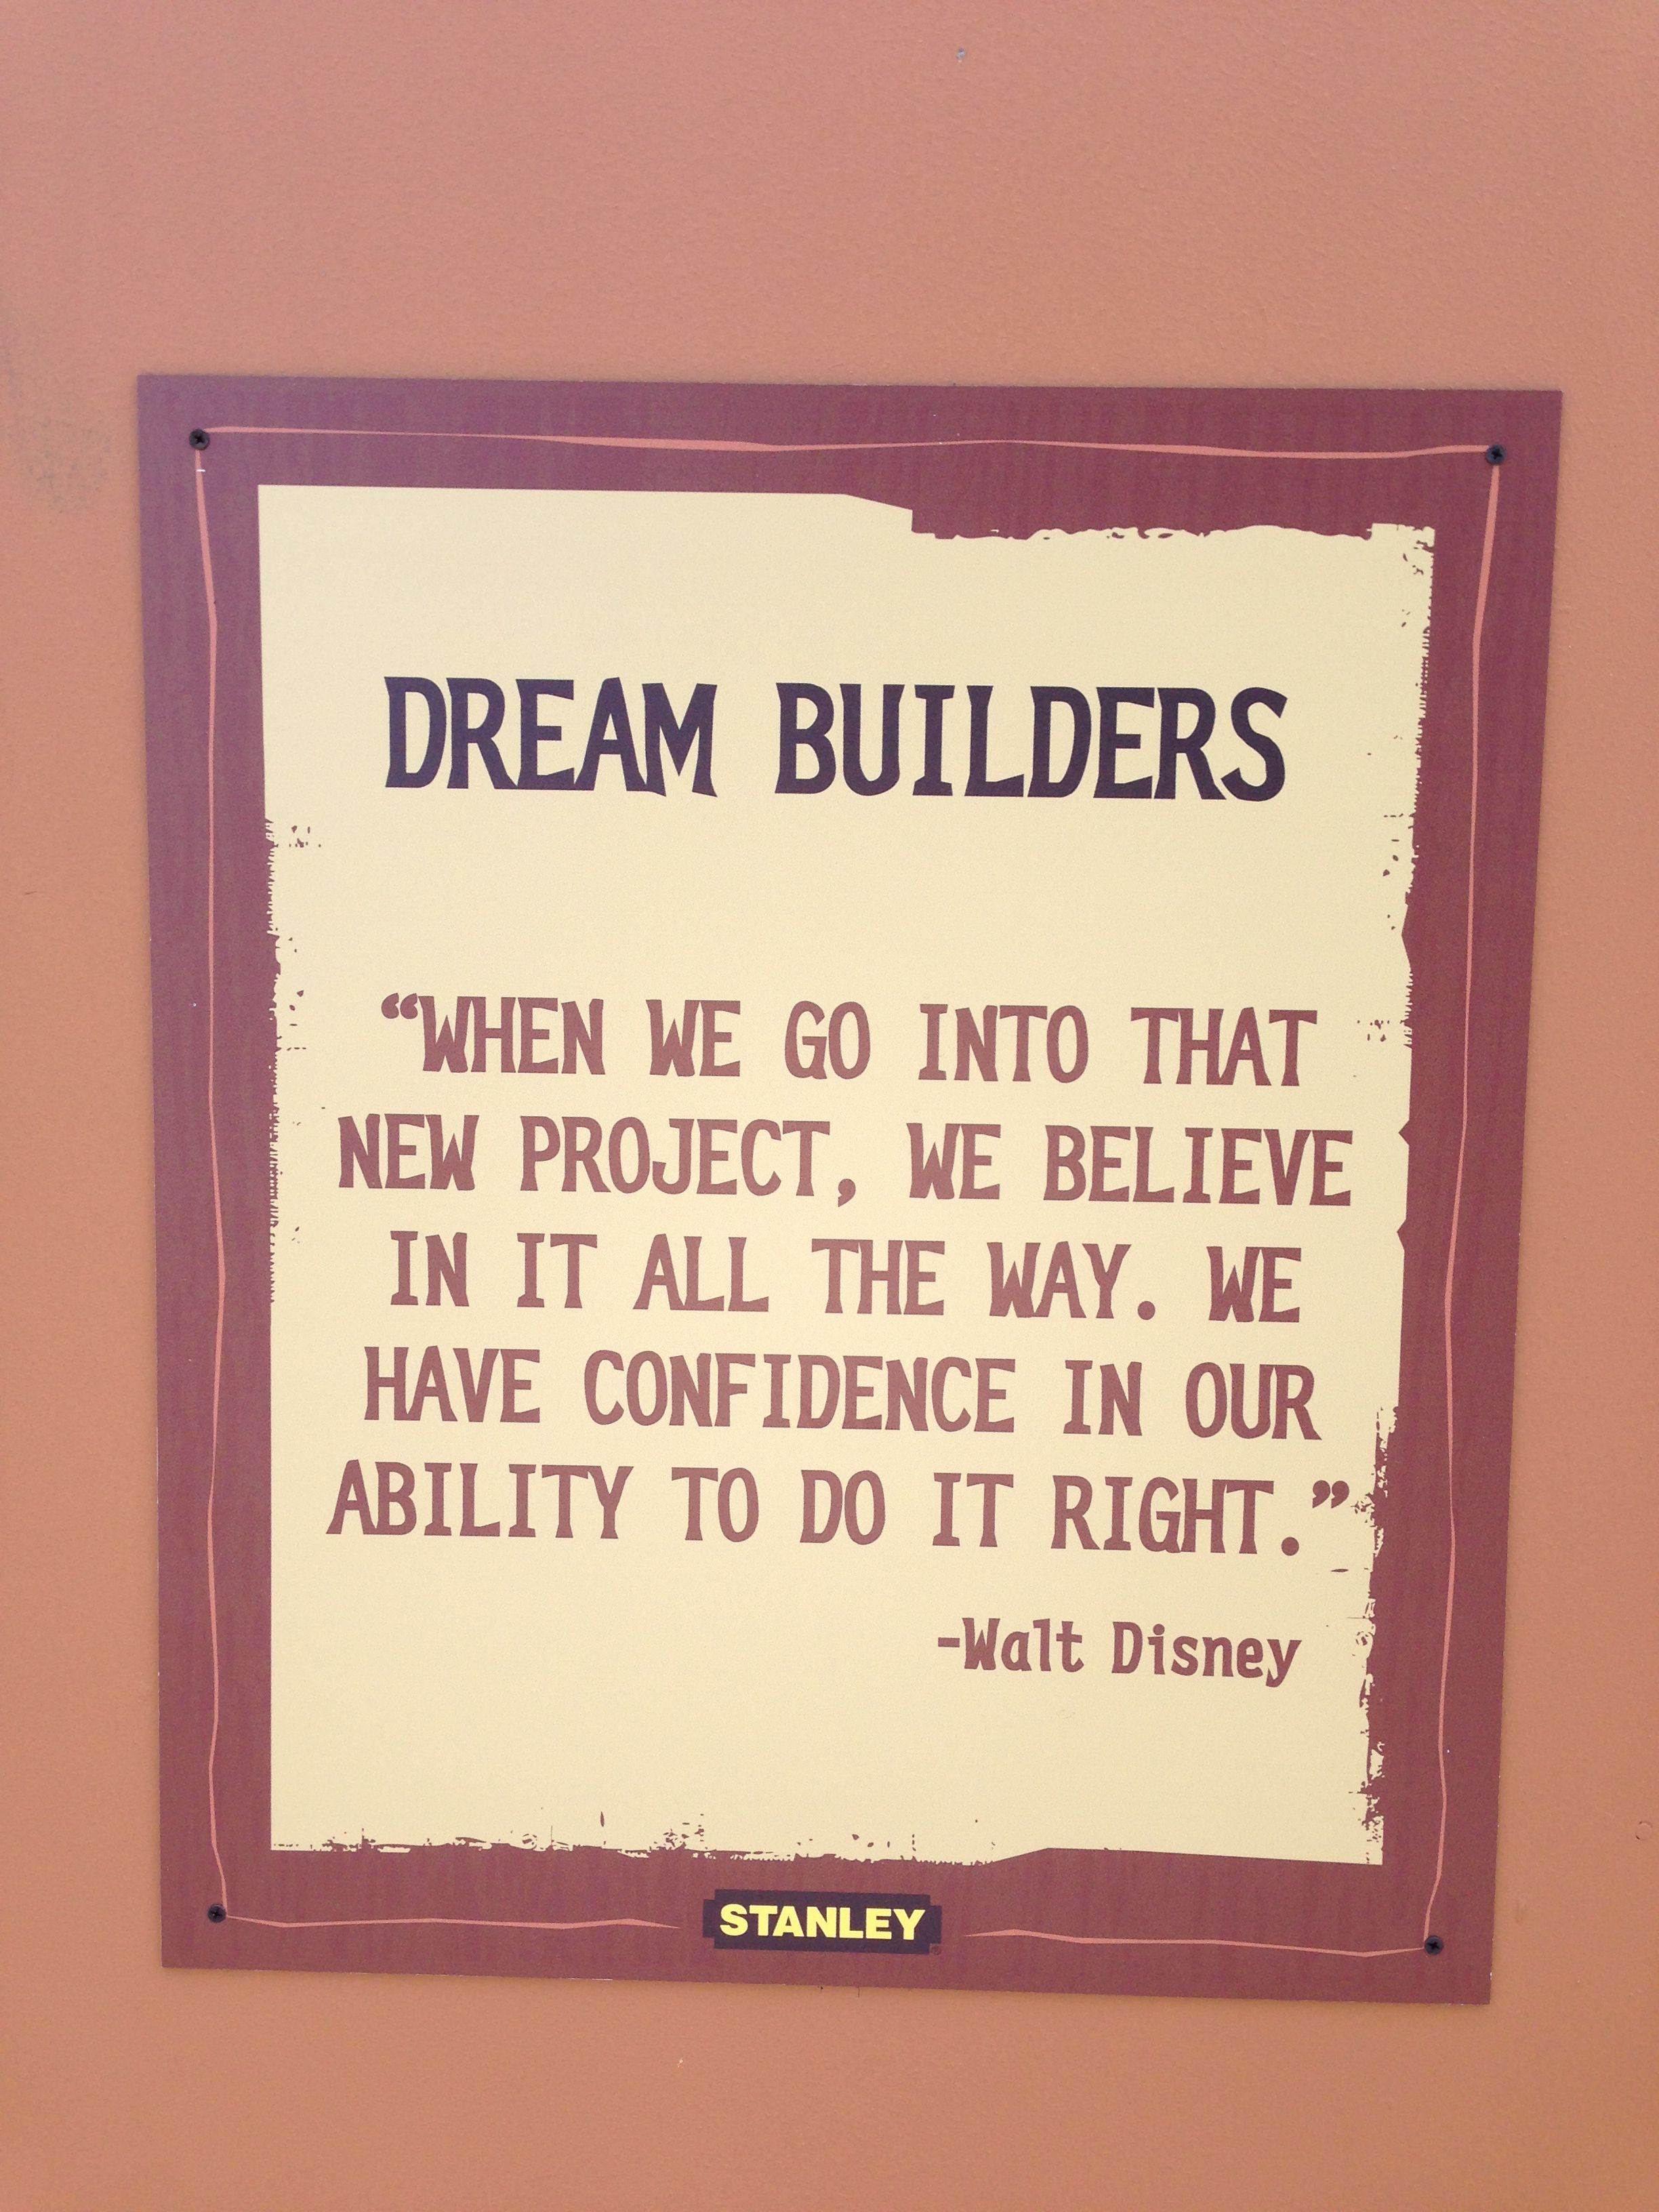 Walt Disney Quotes On Board At Construction Area In Africa At